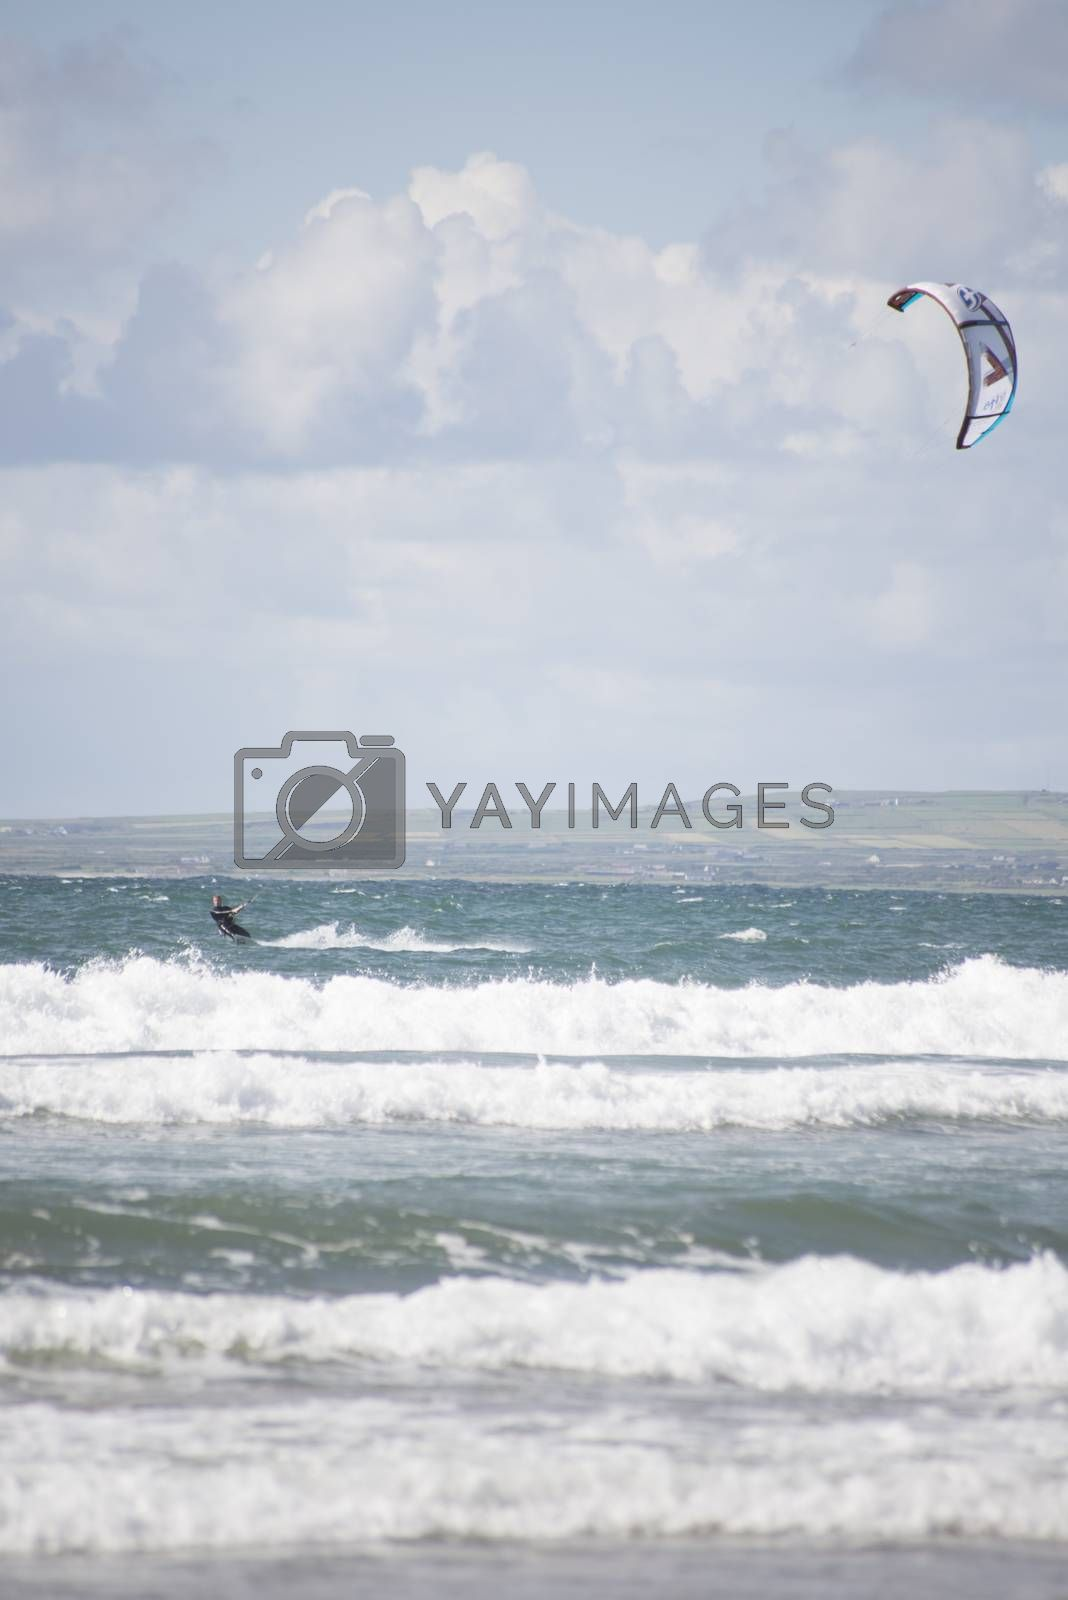 kite surfer on big waves by morrbyte